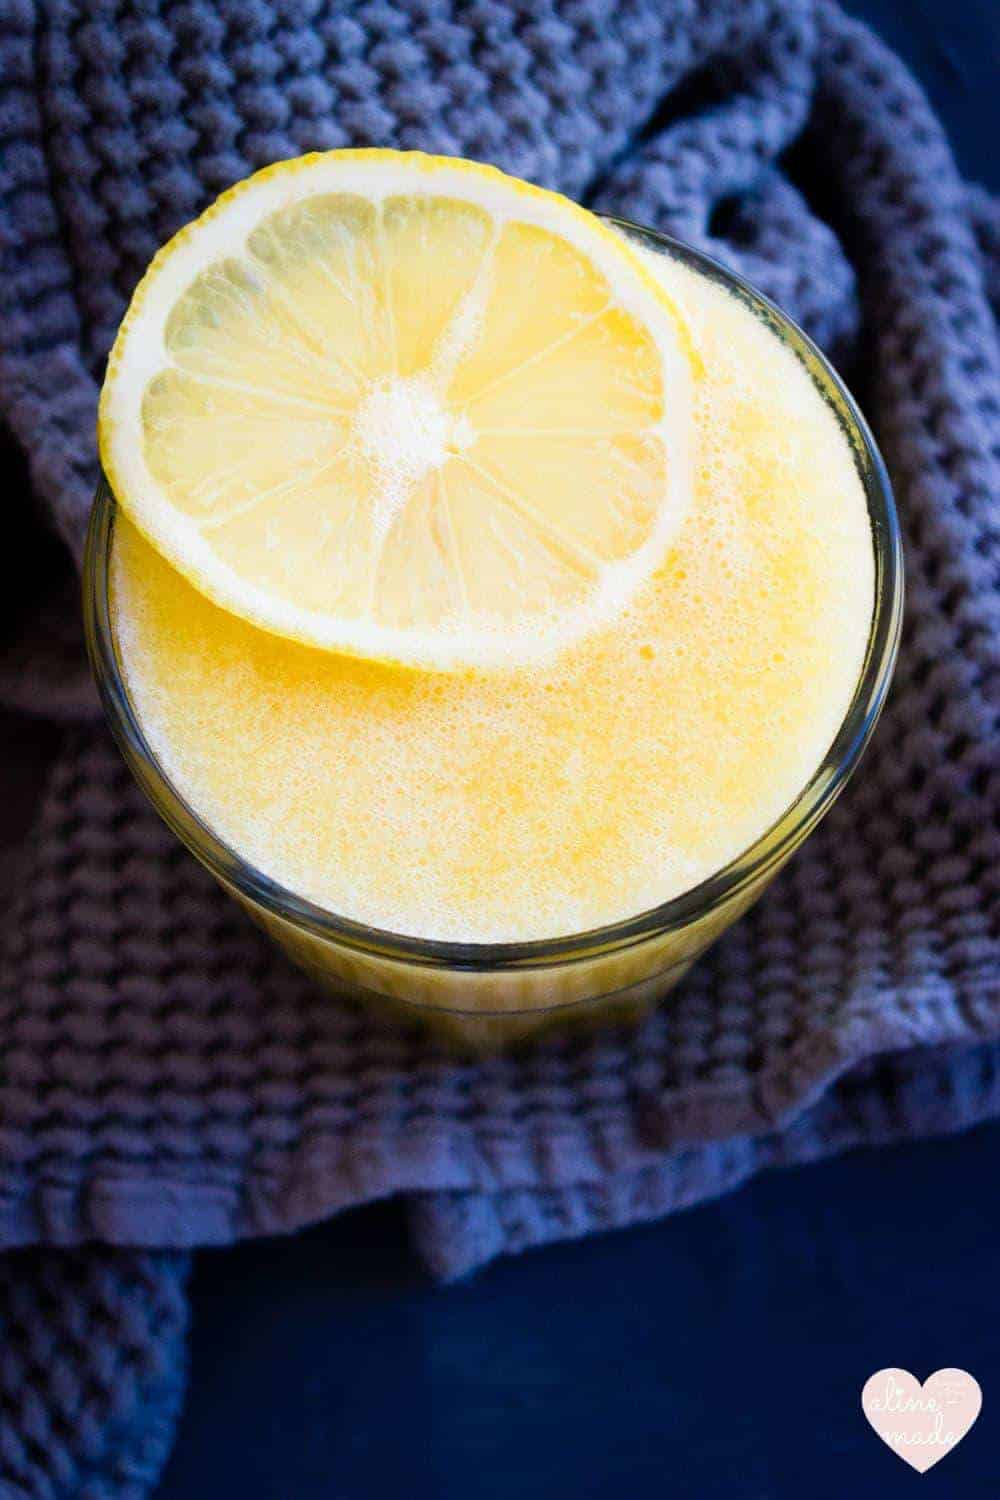 Simply Mango Lemonade - Sparkling yellow topped with a slice of lemon